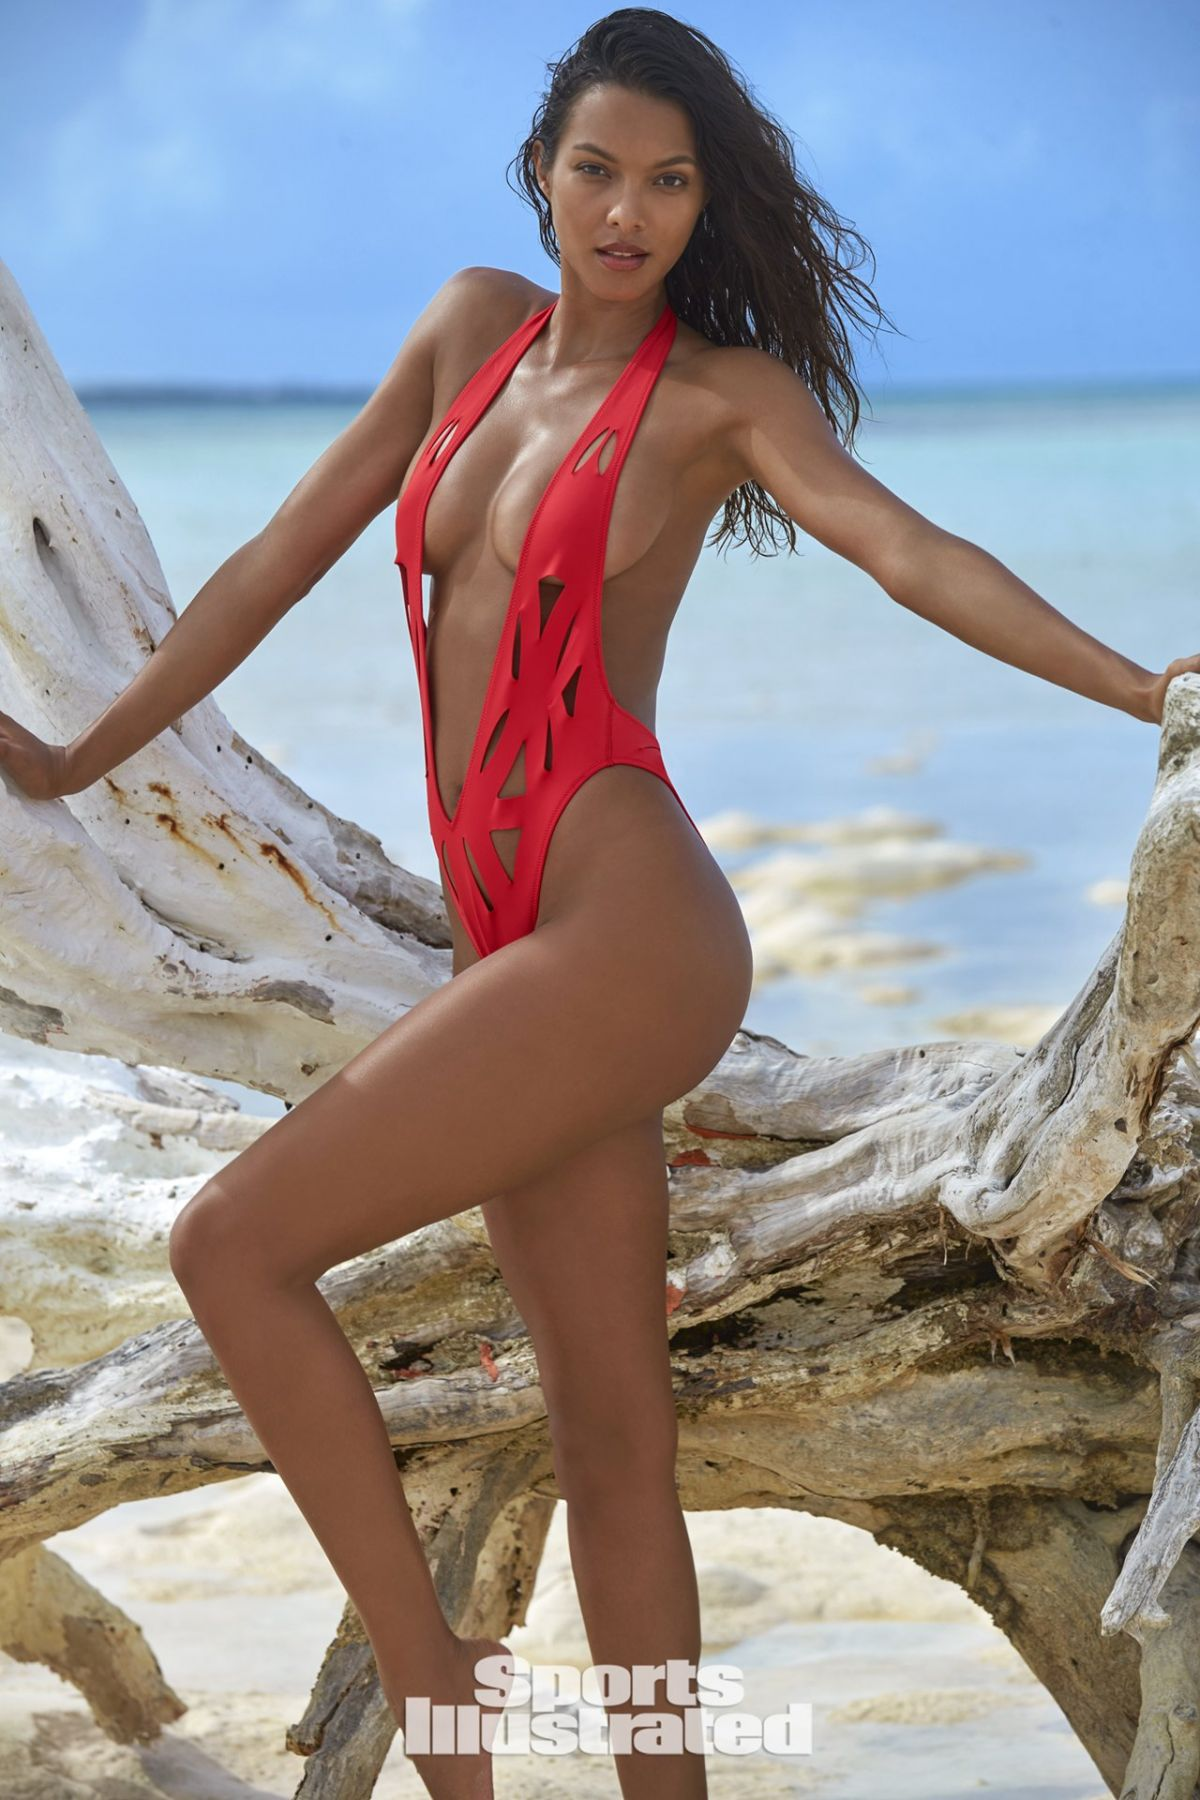 Lais Ribeiro in Sports Illustrated Swimsuit Issue 2018